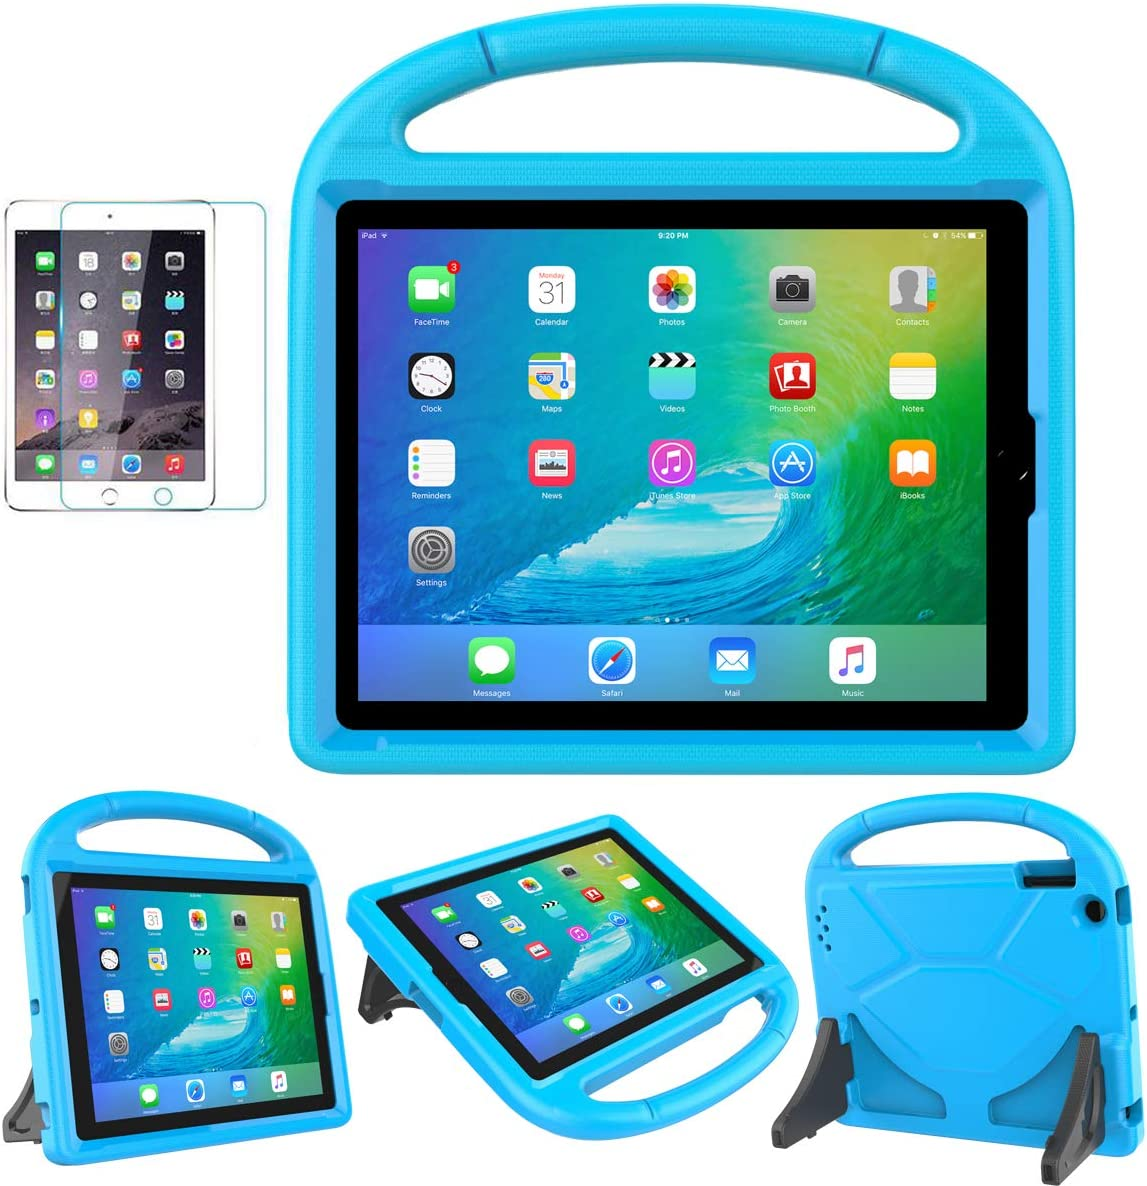 SUPLIK iPad 2/3/4(9.7 inch,2011/2012) Case for Kids - Durable Shockproof Protective Handle Stand Case with Screen Protector for Apple iPad 2nd/3rd/4th Generation(NOT Fit Other 9.7